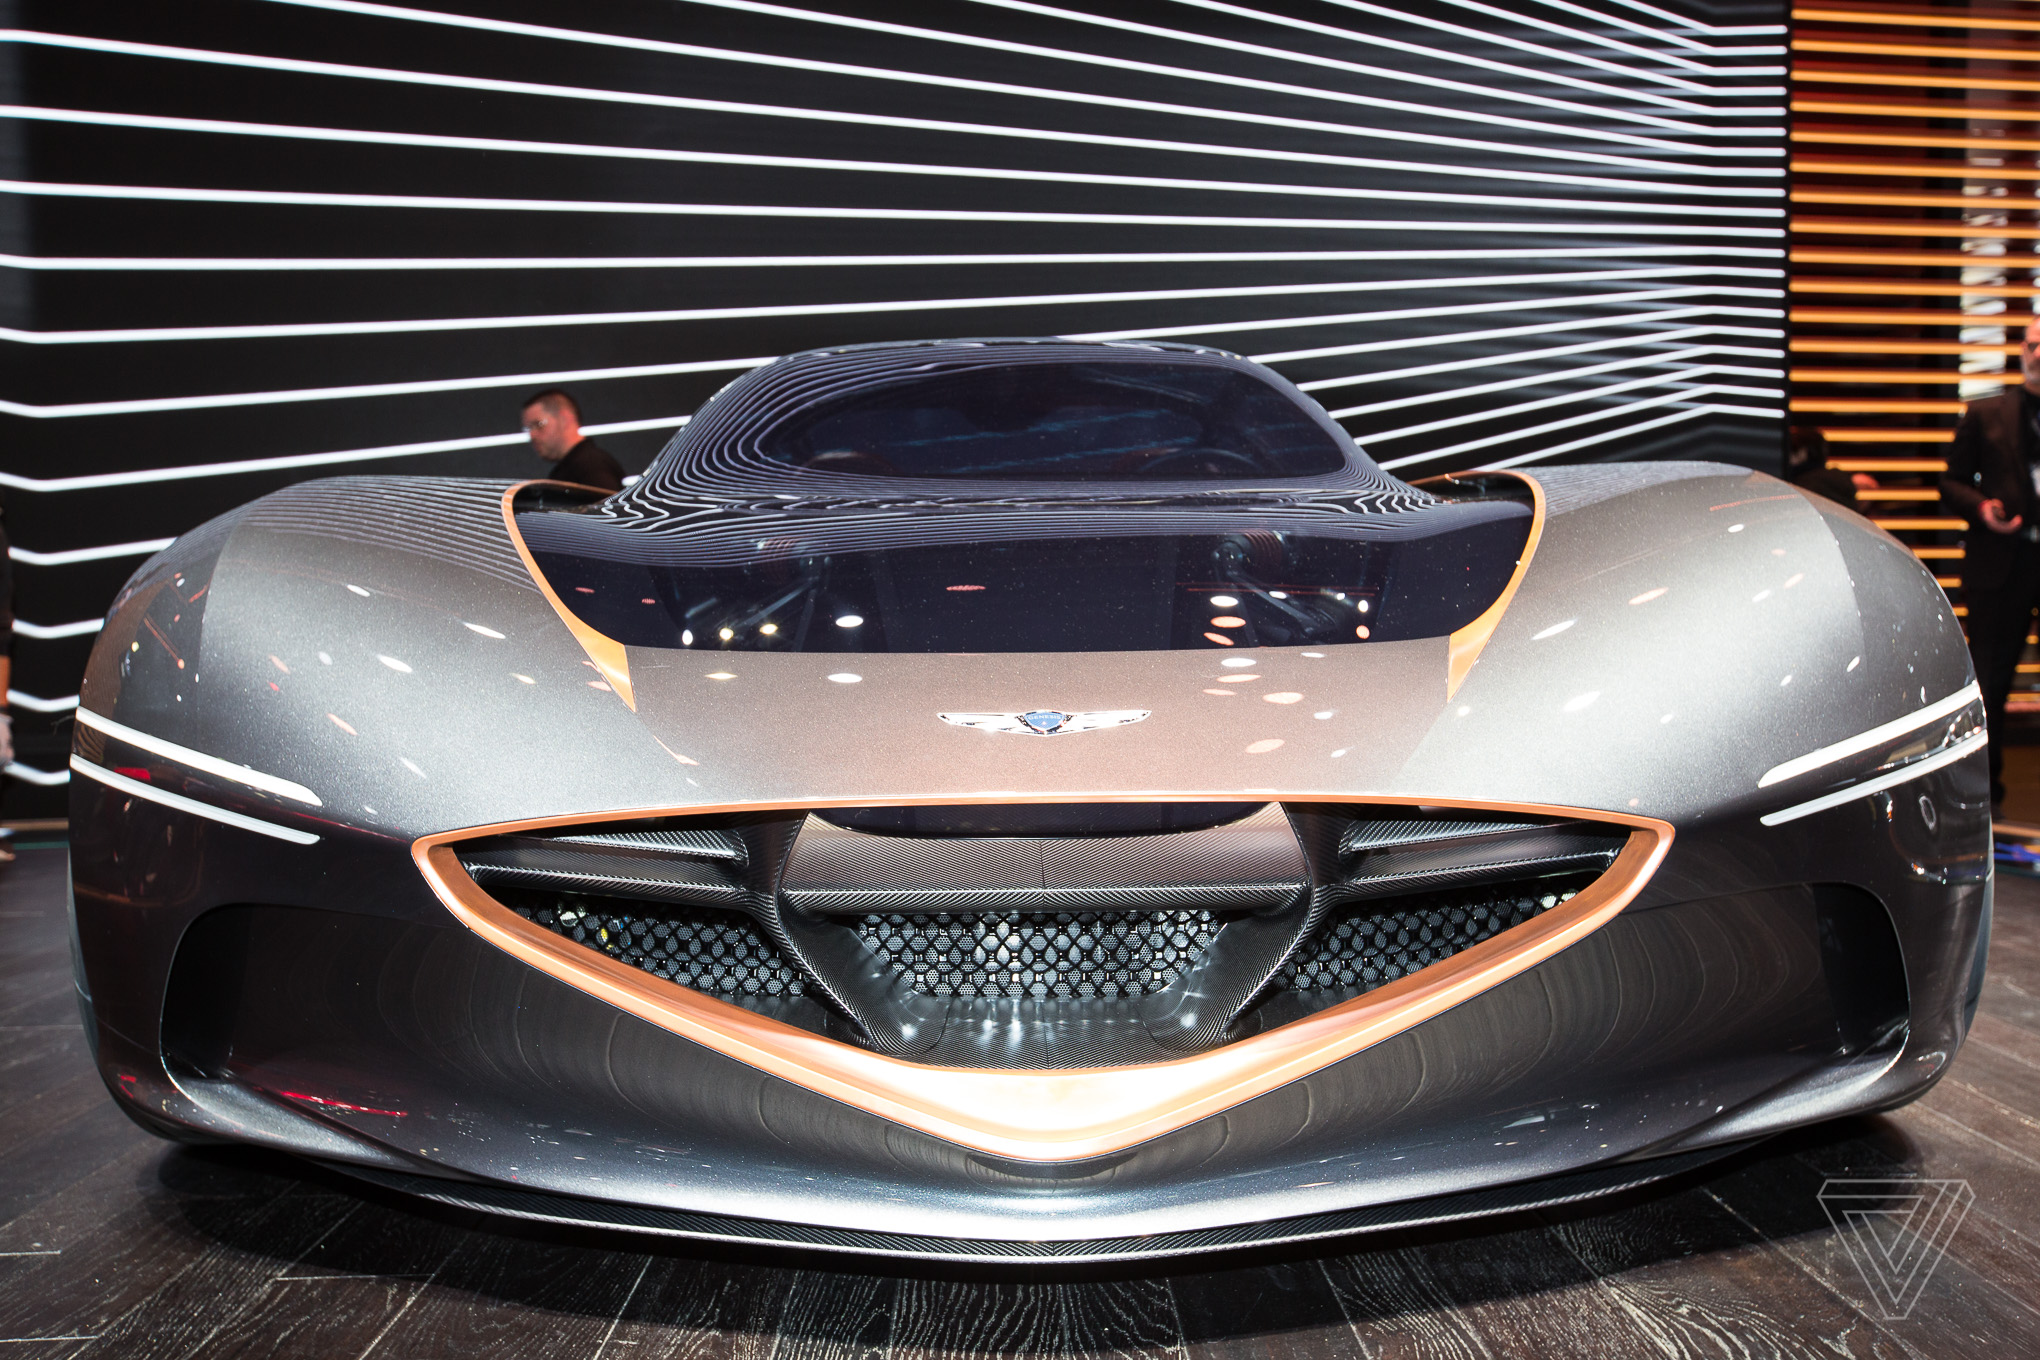 Meilleur Voiture 2018 >> The Best Worst And Weirdest Cars At The 2018 New York Auto Show